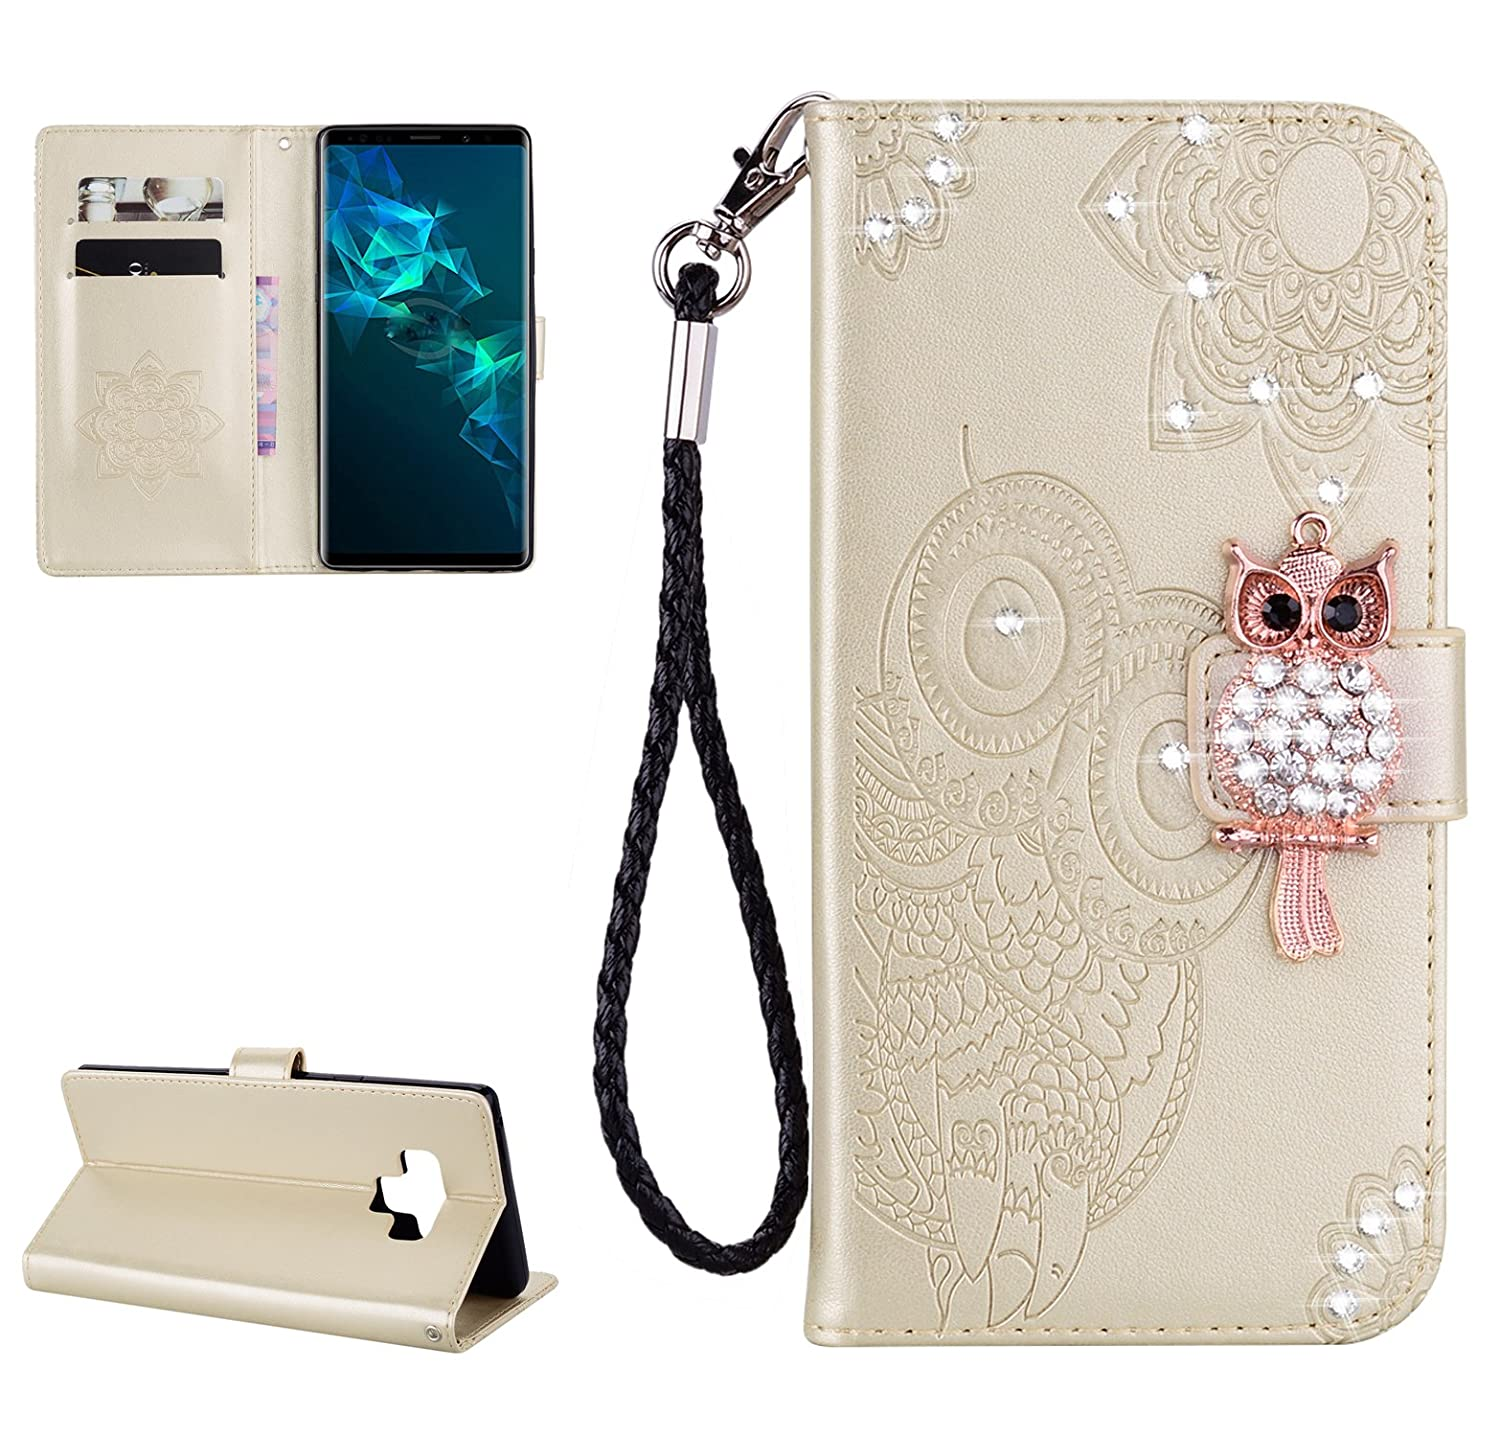 Glitter Diamond Wallet Case for Samsung Galaxy Note 9, Gostyle Embossed Owl Flower Leather Flip Card Holder Case, 3D Bling Rhinestone Magnetic Closure with Hand Strap Stand Cover-Gold